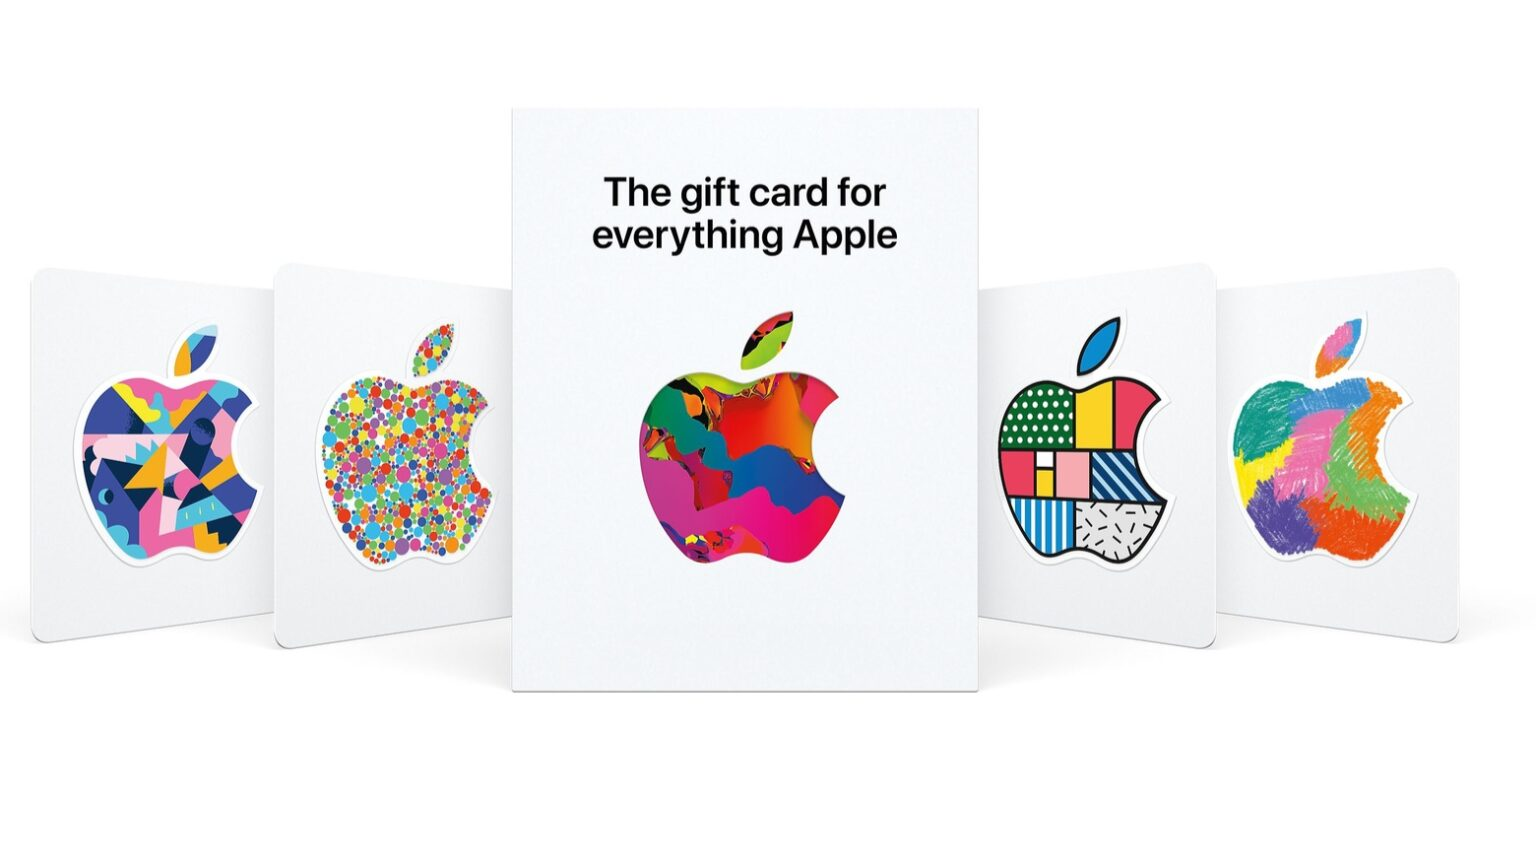 Buy hardware or software with the new Apple gift card.